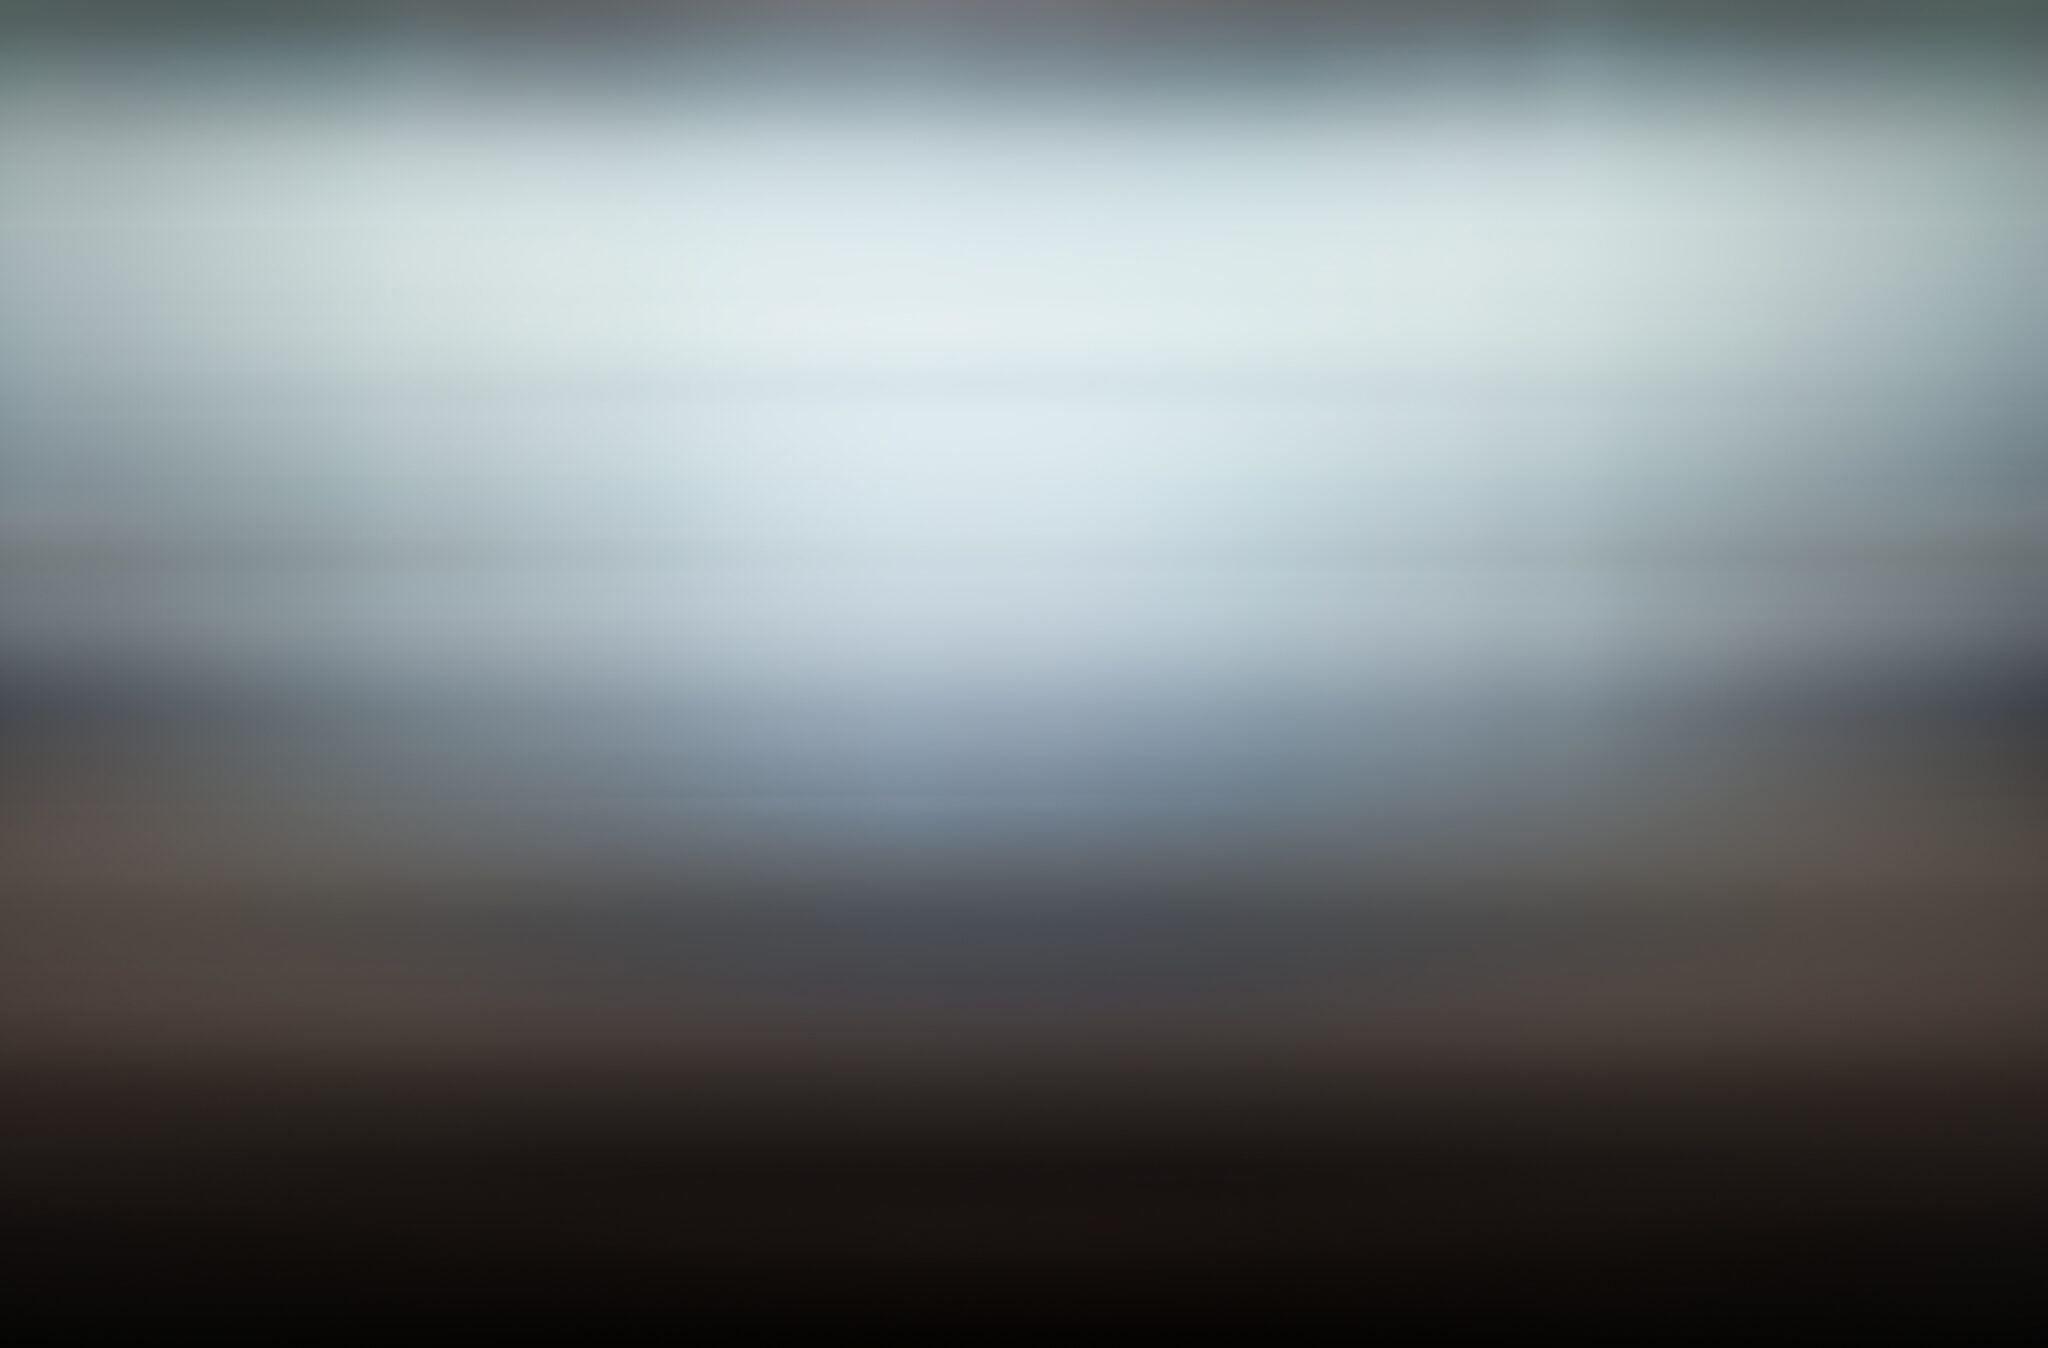 Abstract landscape photograph